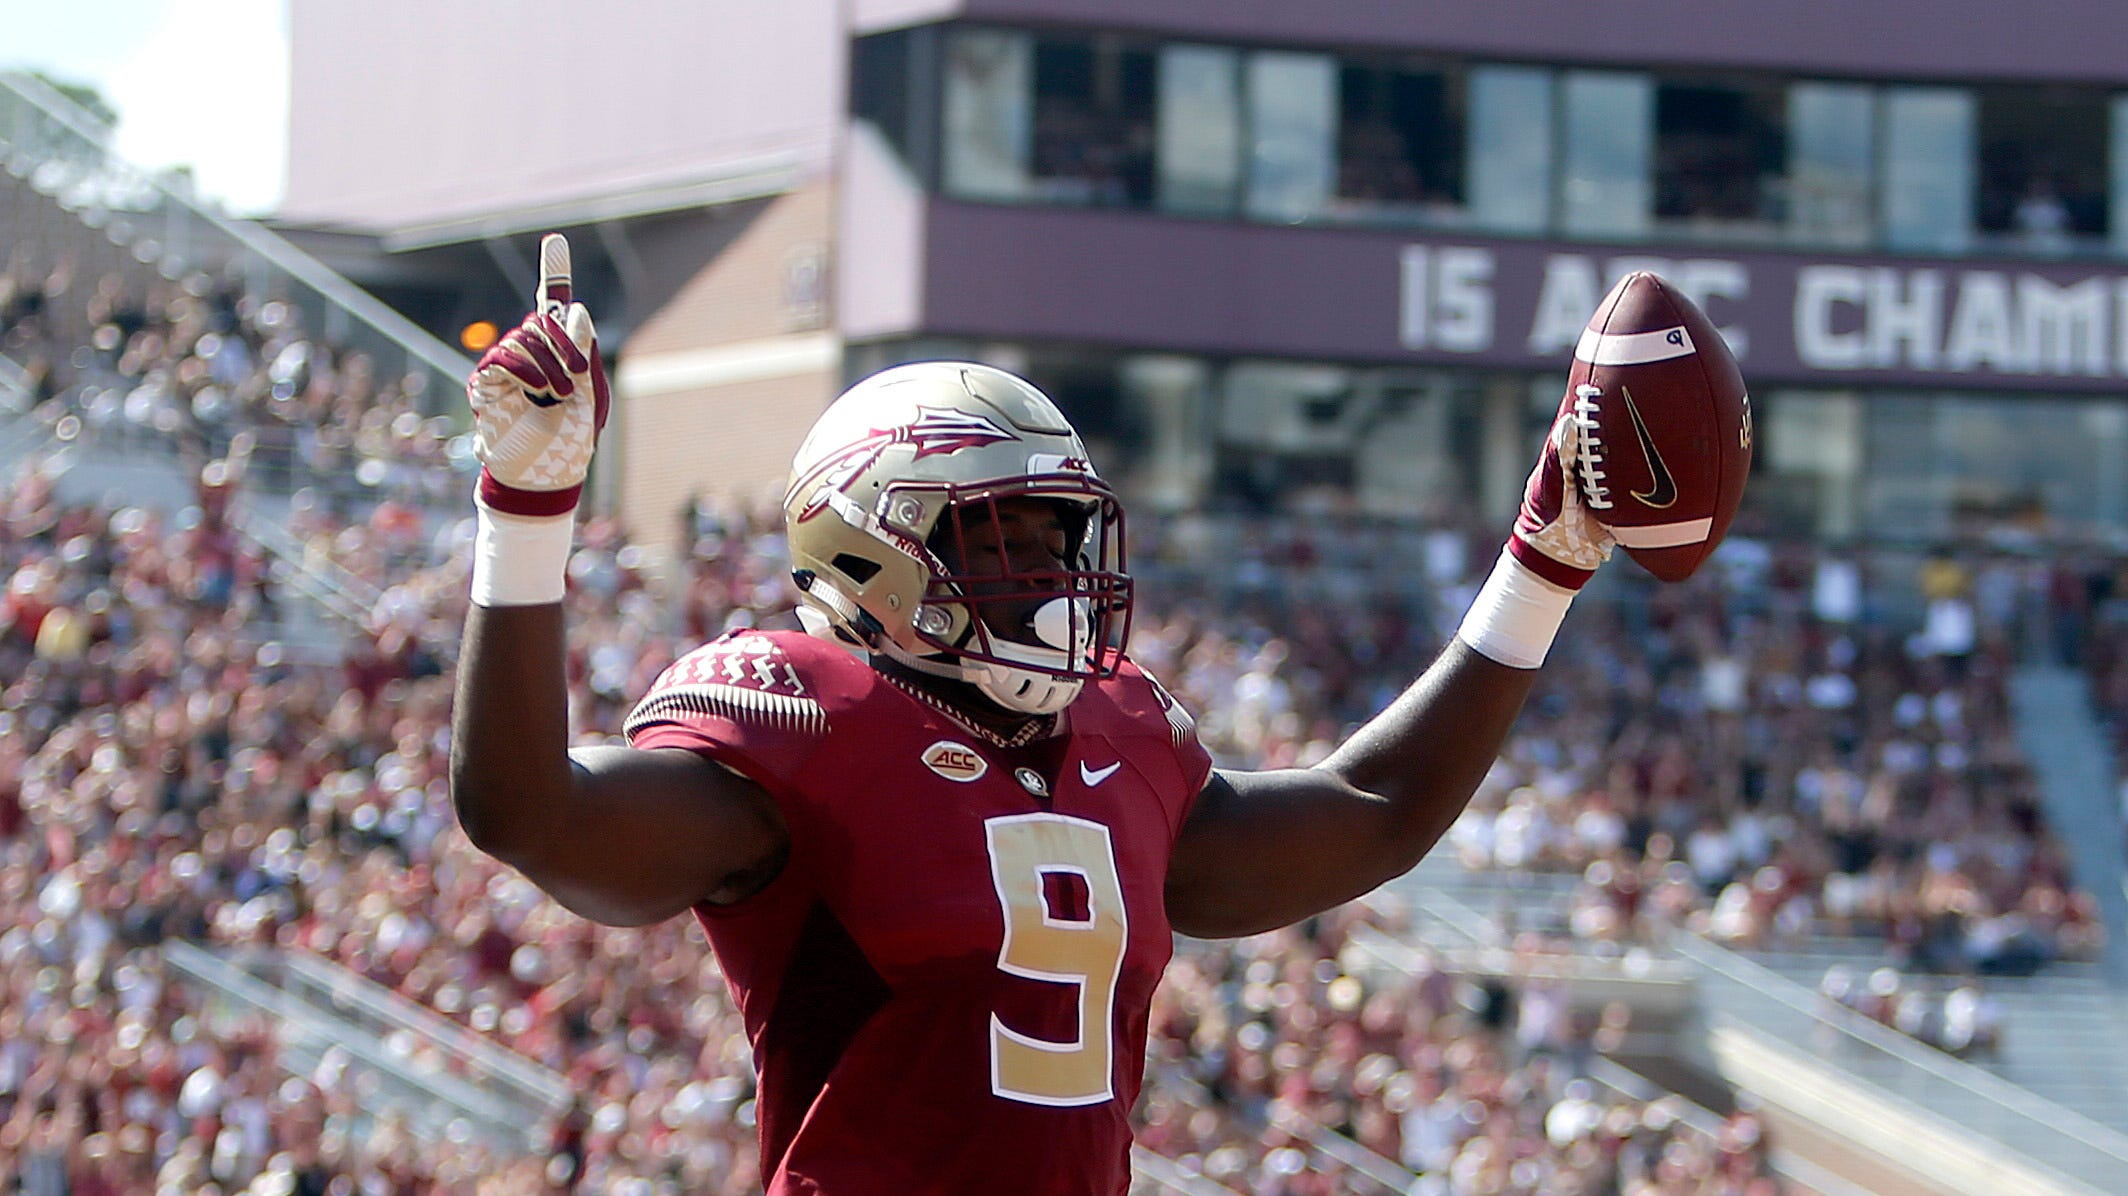 Three takeaways from Florida State's win over Northern Illinois